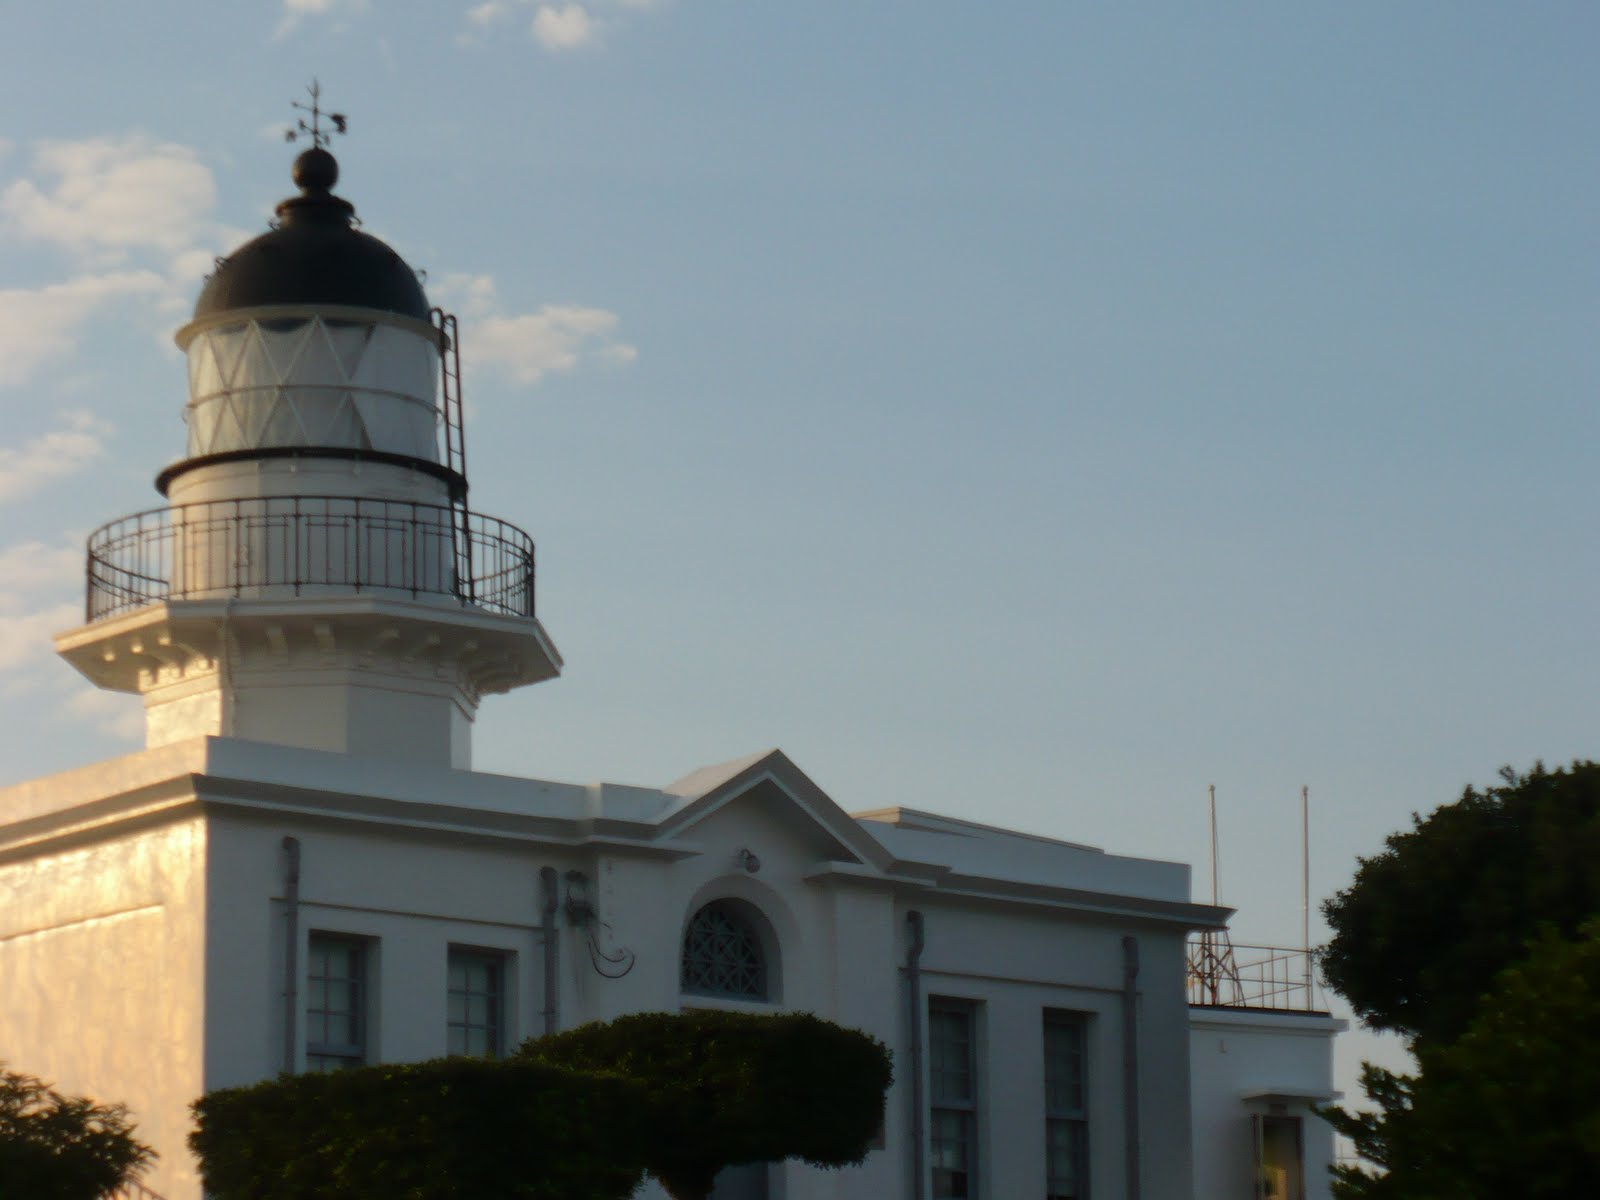 Cijin Lighthouse